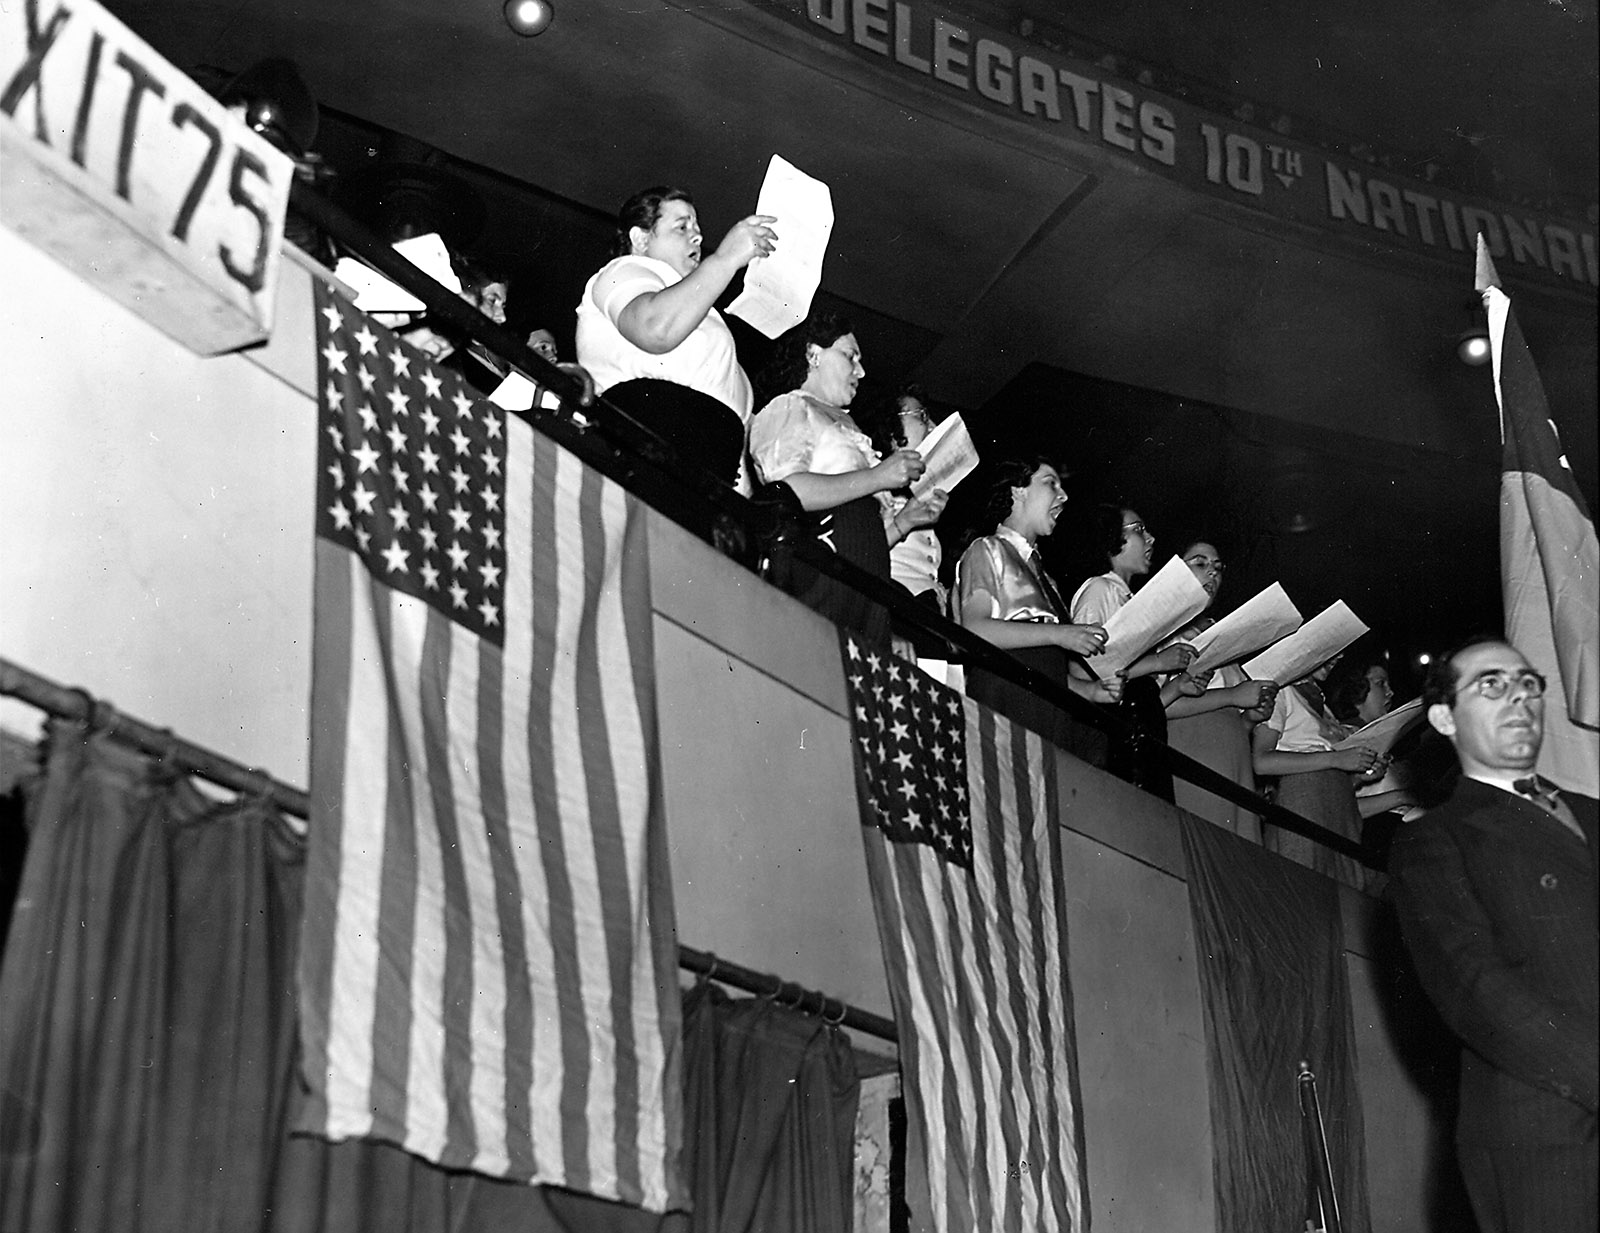 Communist Party Convention, New York City, 1938